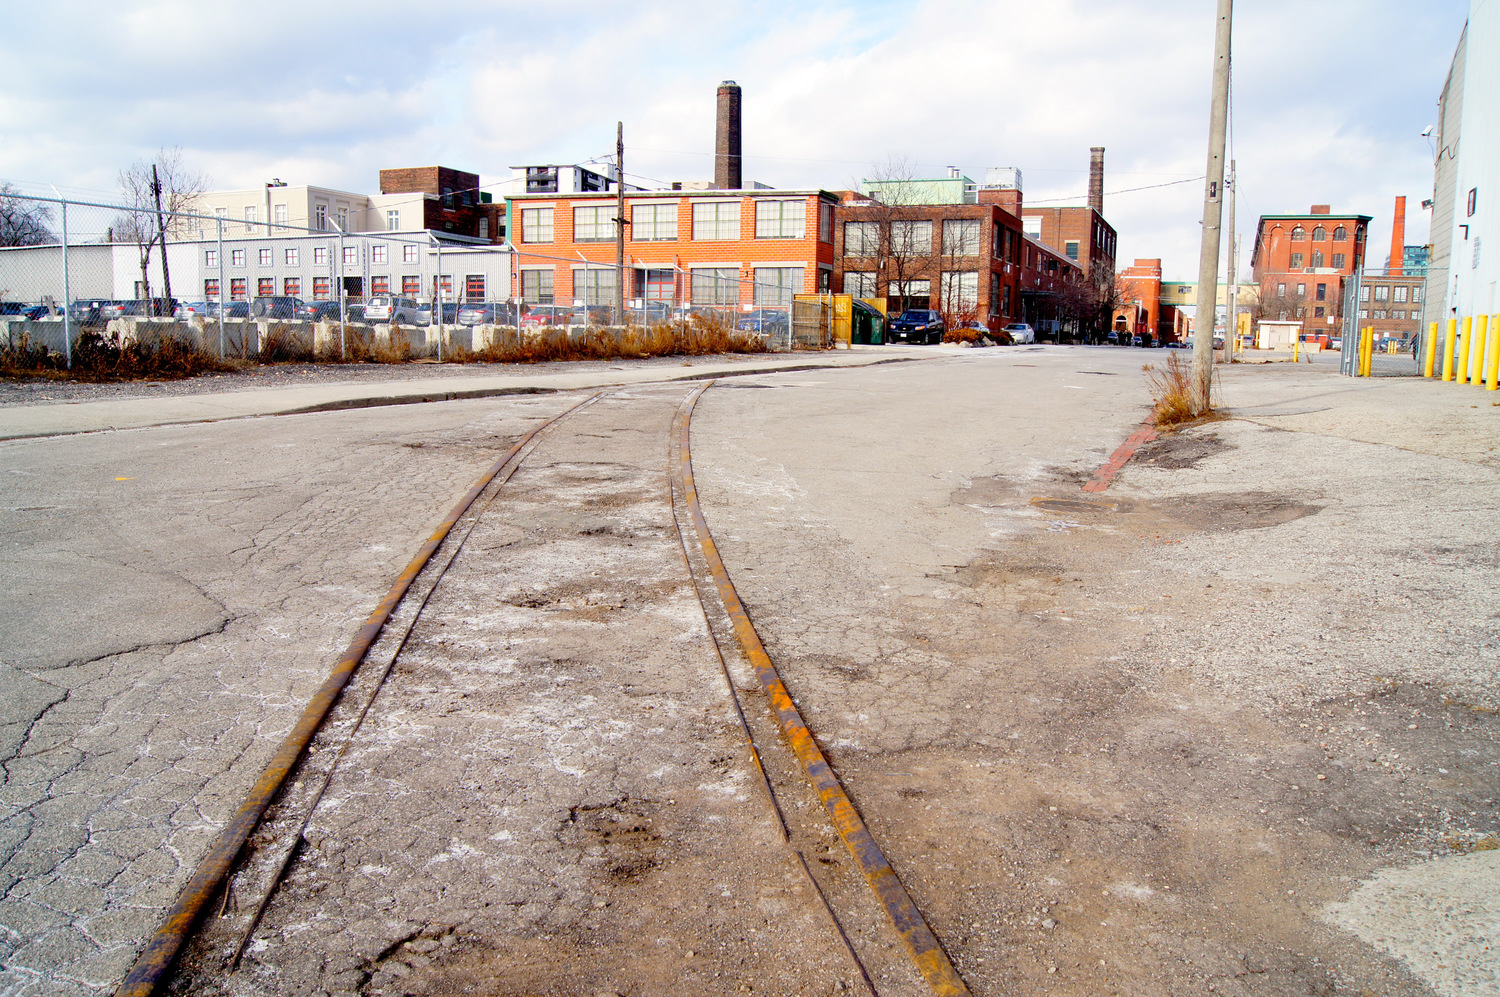 This photo is in the west side of Liberty Village. I was poking around the streets one day and noticed the tracks. I got down almost on my knees to try to capture a track-level view. Some people think that's an old picture, but it taken in 2013.